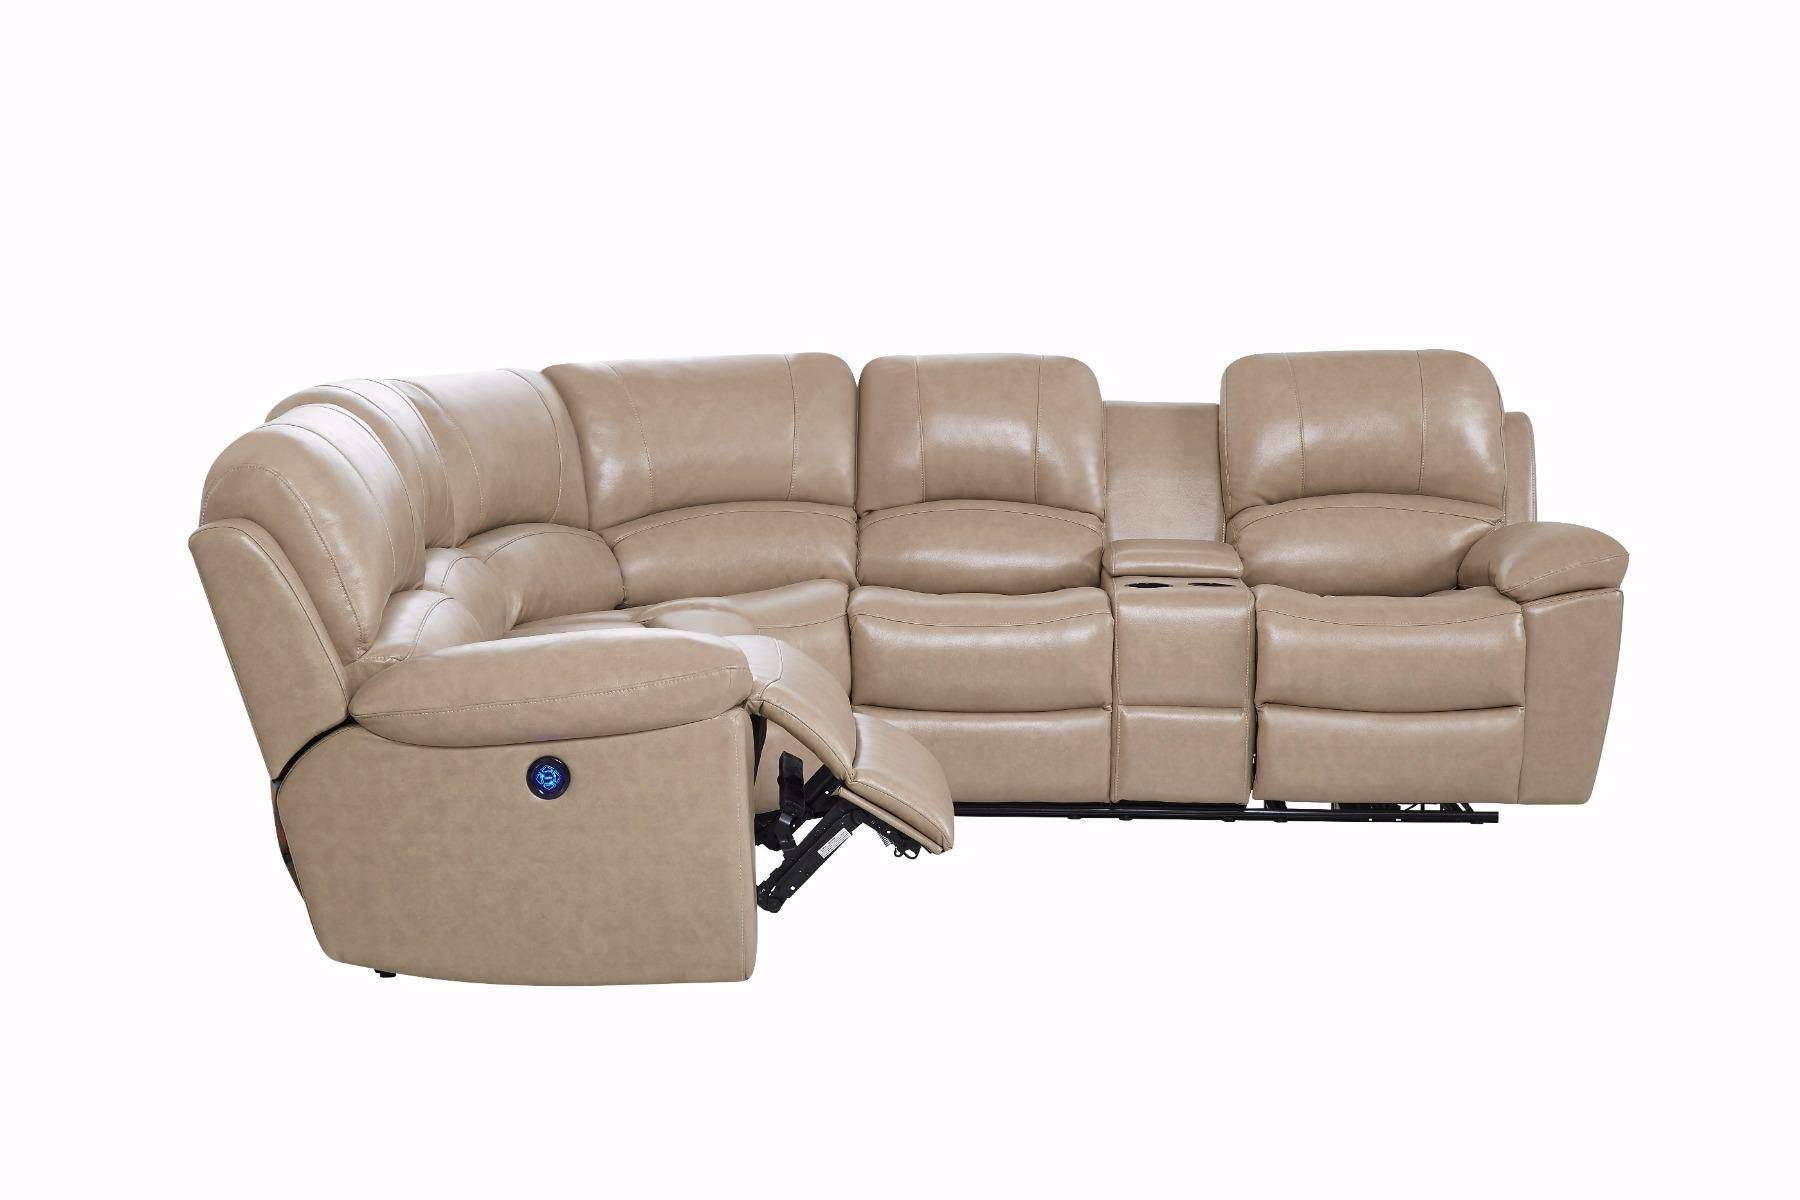 Global Furniture U15026 Glove Tan Leather Reclining ...